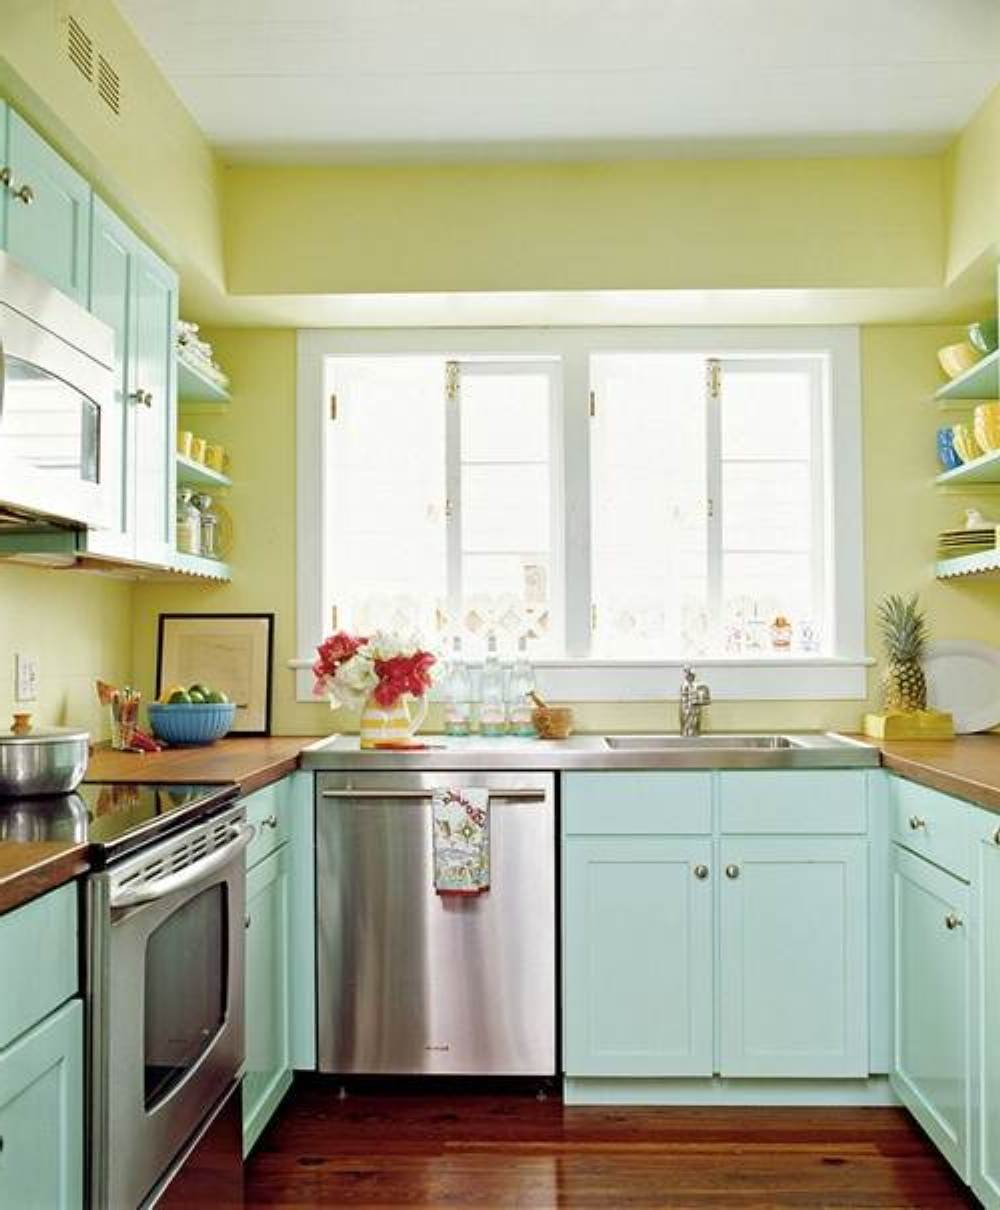 small-kitchen-as-kitchen-remodel-with-impressive-Appearance-for-appealing-Kitchen-Design-and-Decorating-Ideas-6